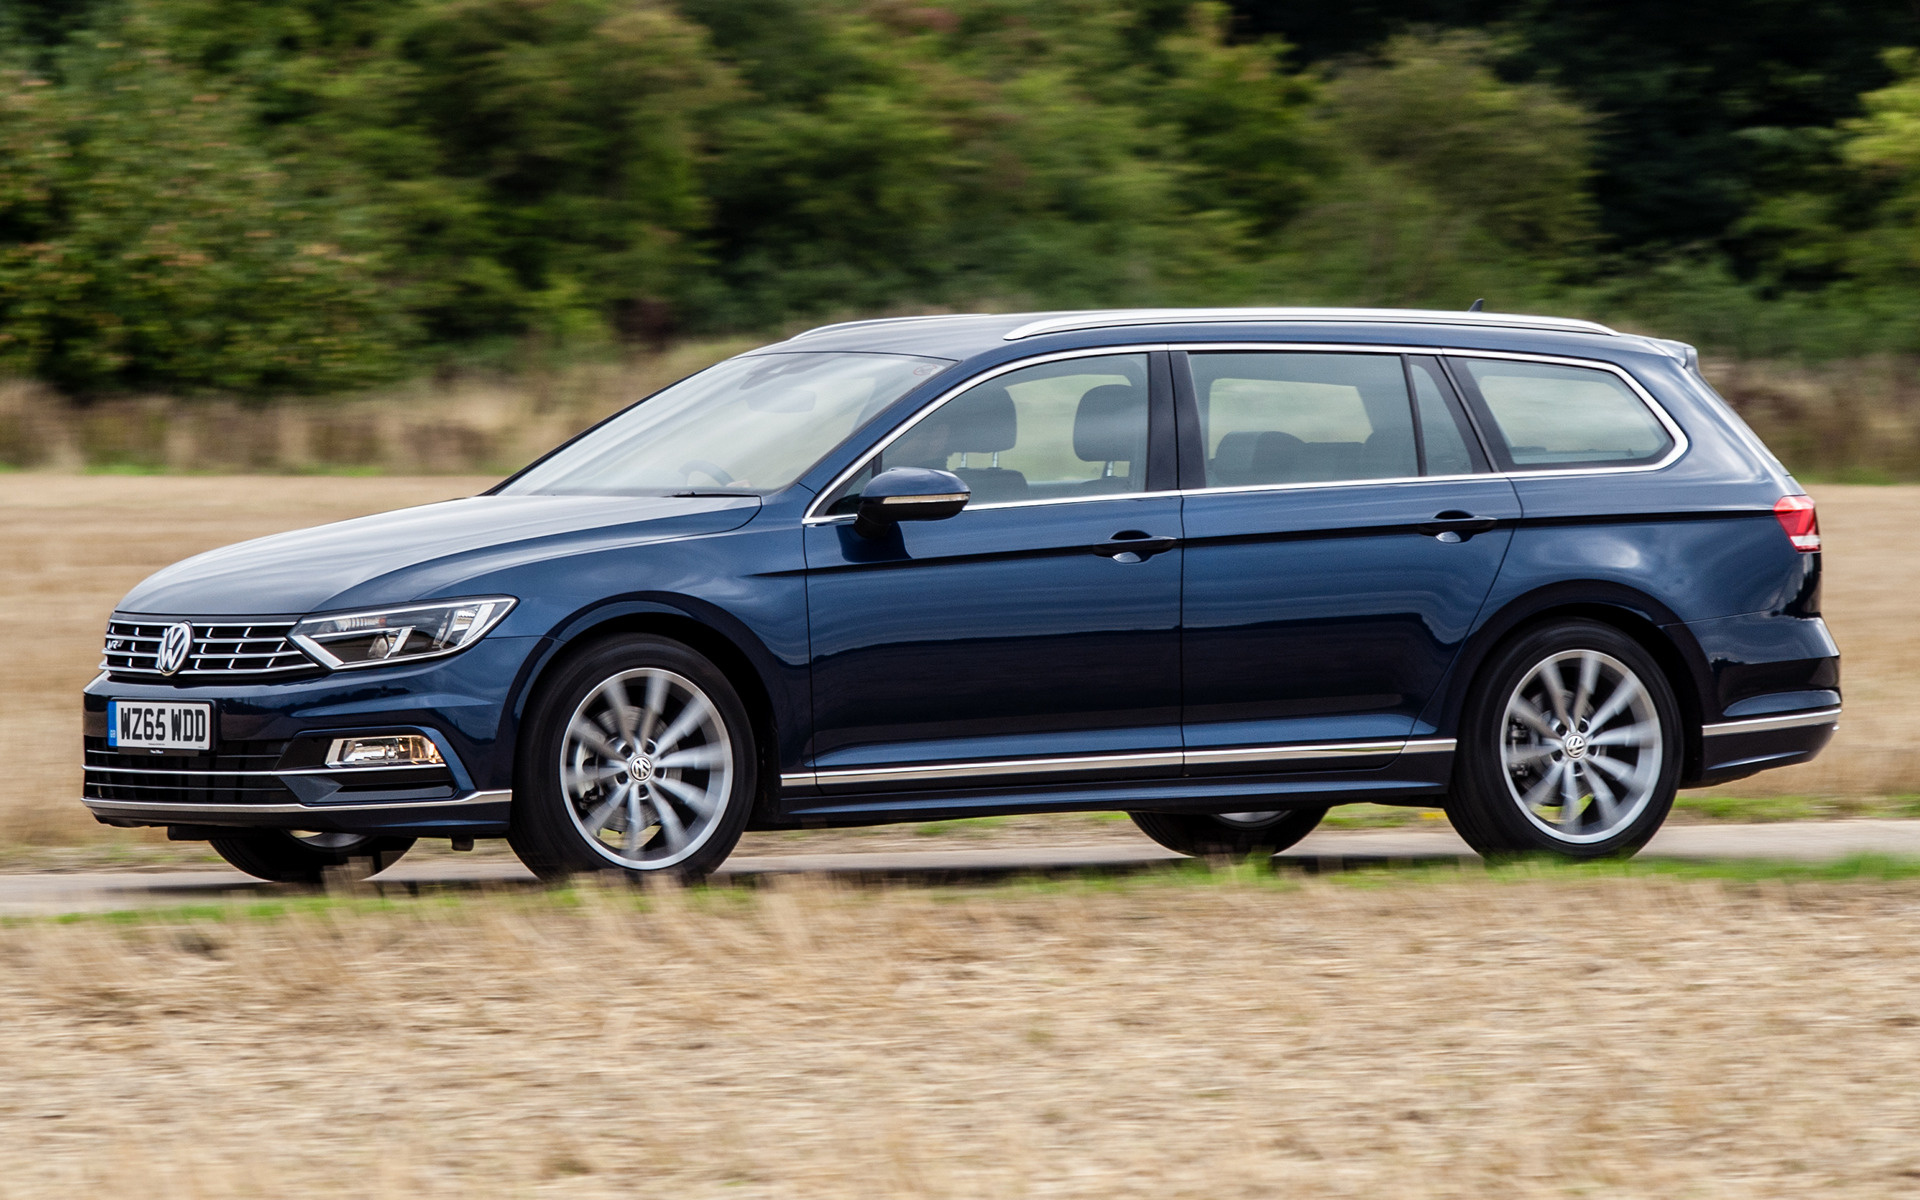 2015 Volkswagen Passat Estate R-Line (UK) - Wallpapers and ...